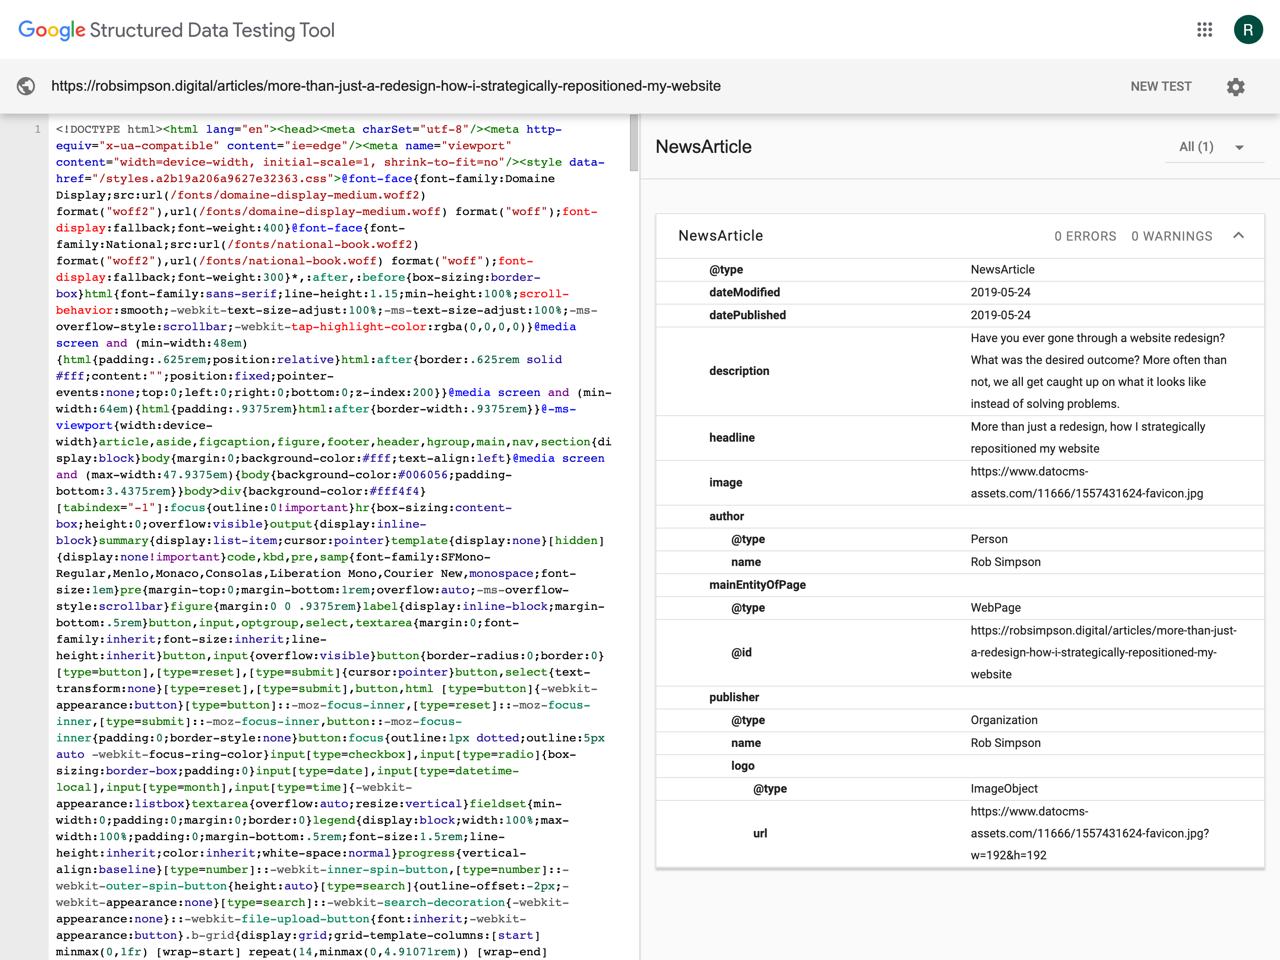 Google structured data testing tool results for robsimpson.digital blog article page